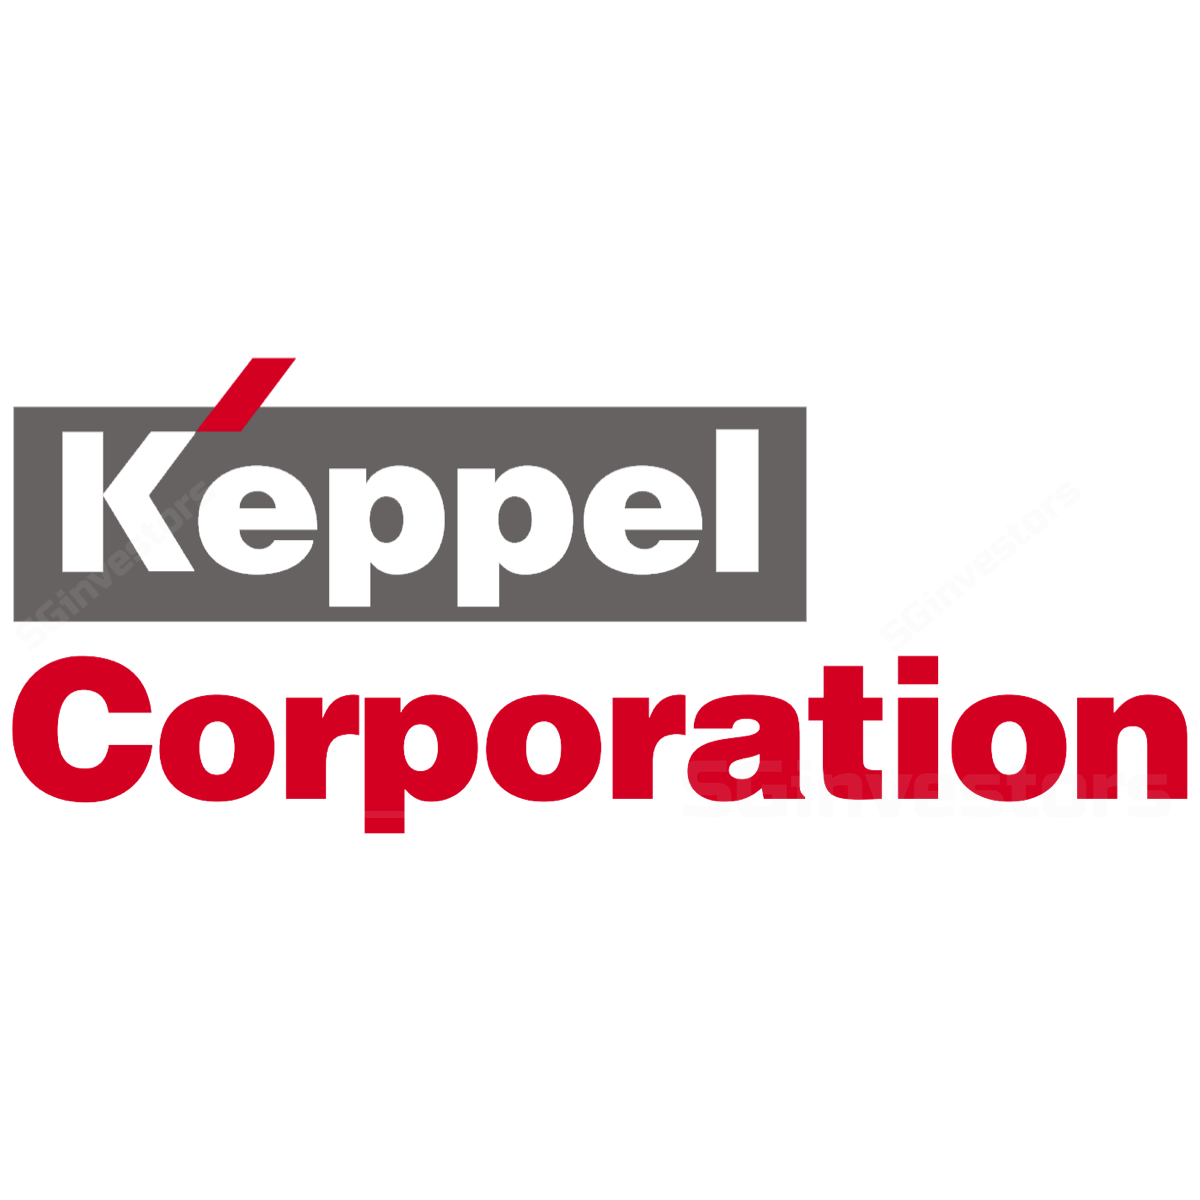 Keppel Corporation - DBS Group Research Research 2018-07-20: Dividend Surprise